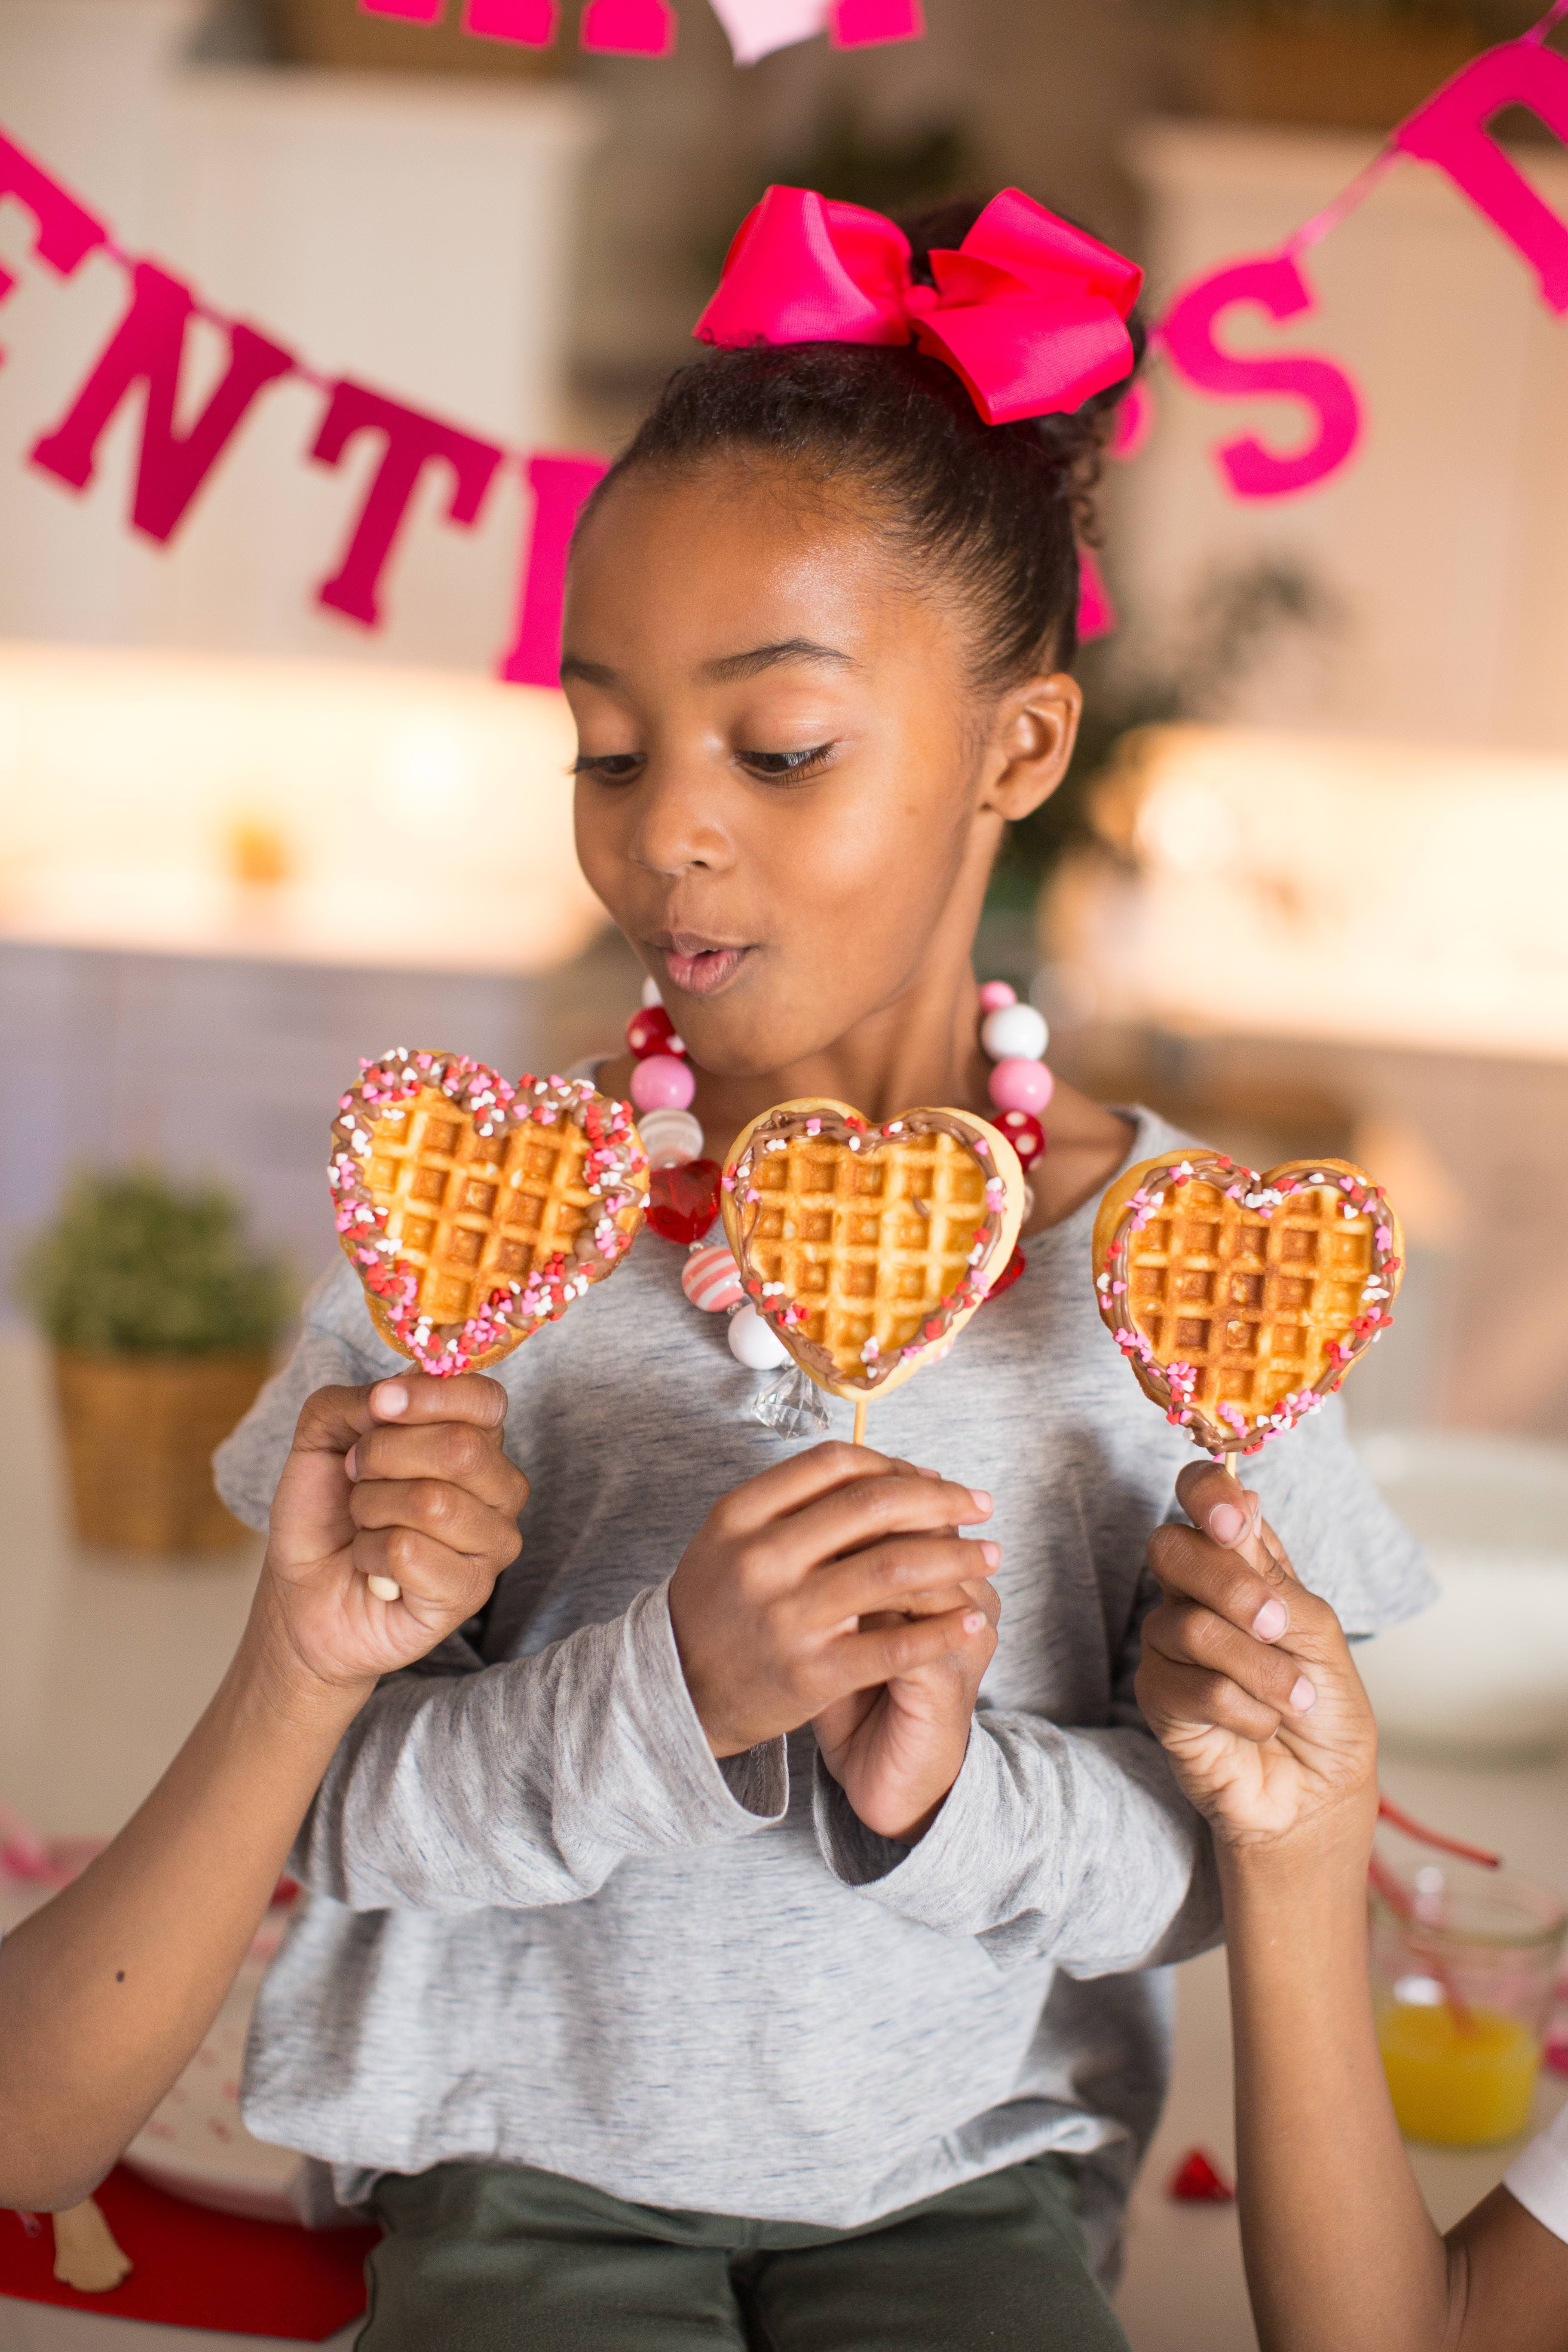 Valentine's Day Heart-Shaped Waffles on a Stick